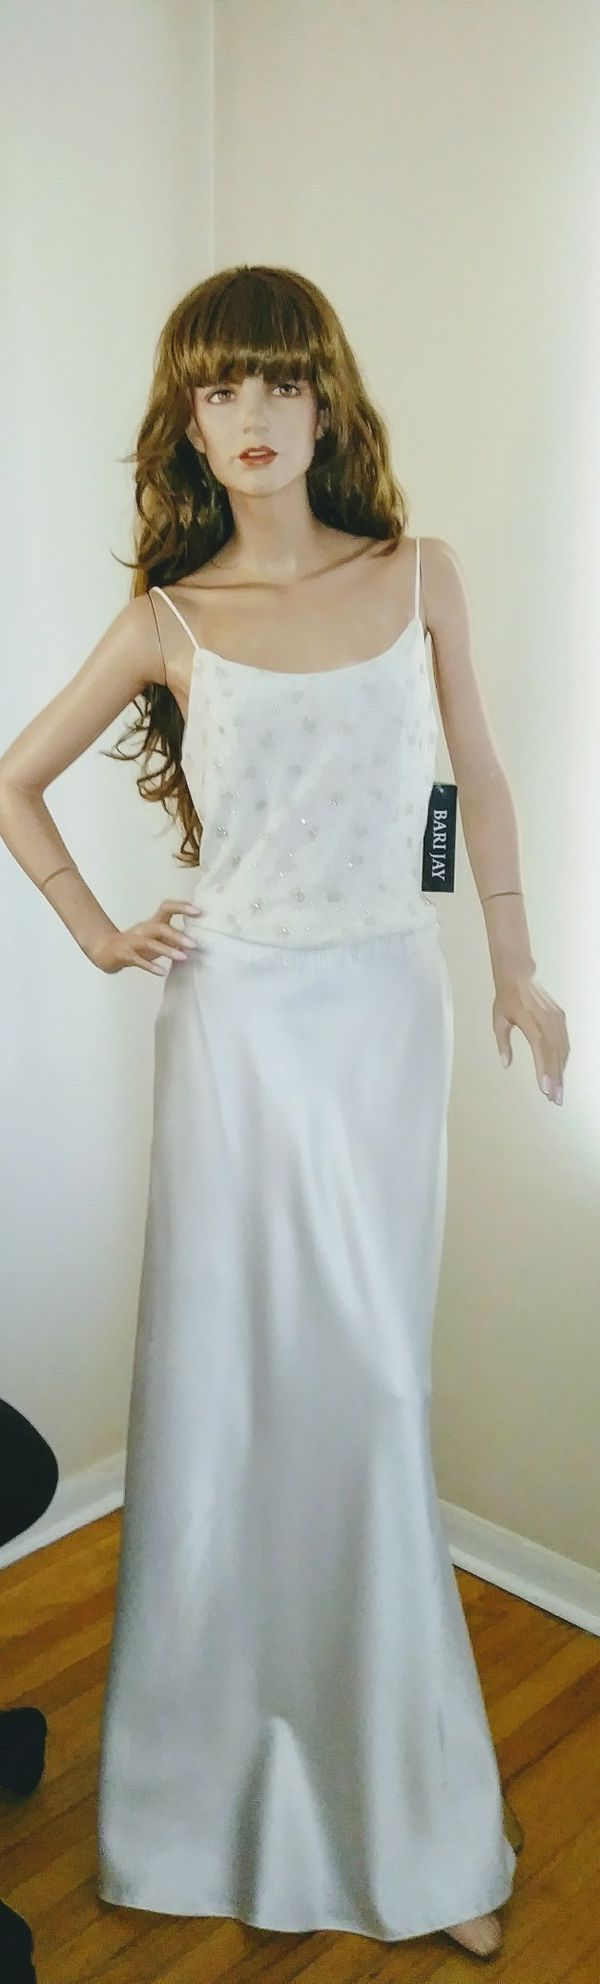 Prom-Wedding Dress by Bari Jay (Clothing & Shoes) in Indianapolis ...